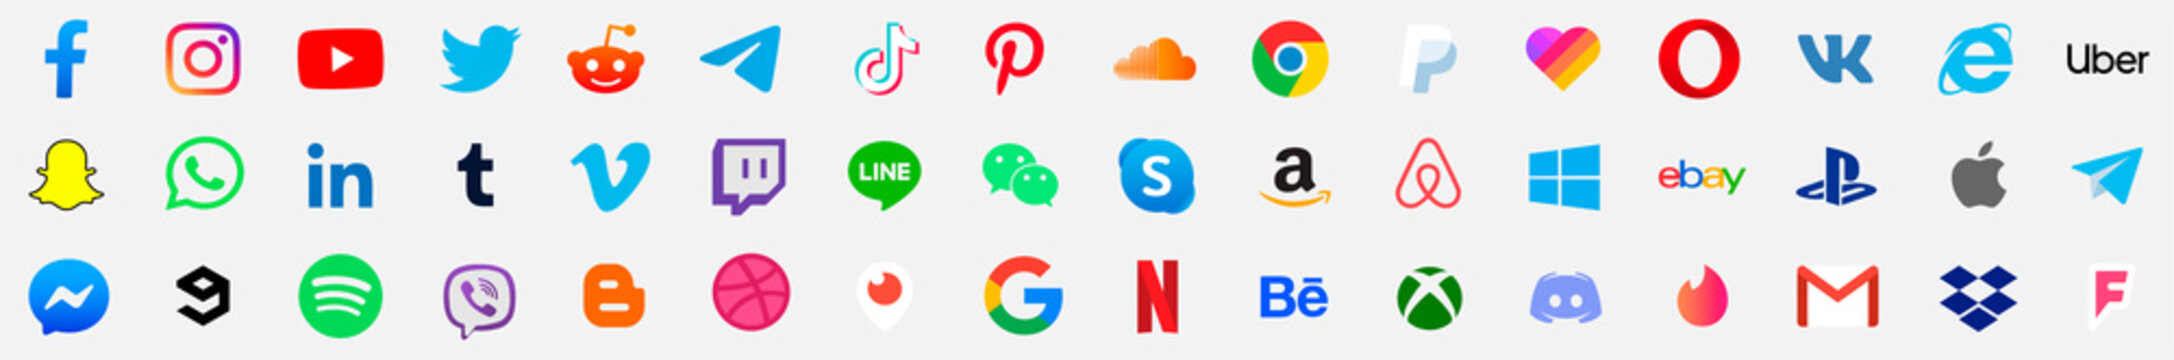 Facebook, twitter, instagram, youtube, reddit,telegram,snapchat, pinterest, tiktok ,uber, gmail, internet explorer, playstation, xbox, messenger logo. social media logo. social media set background